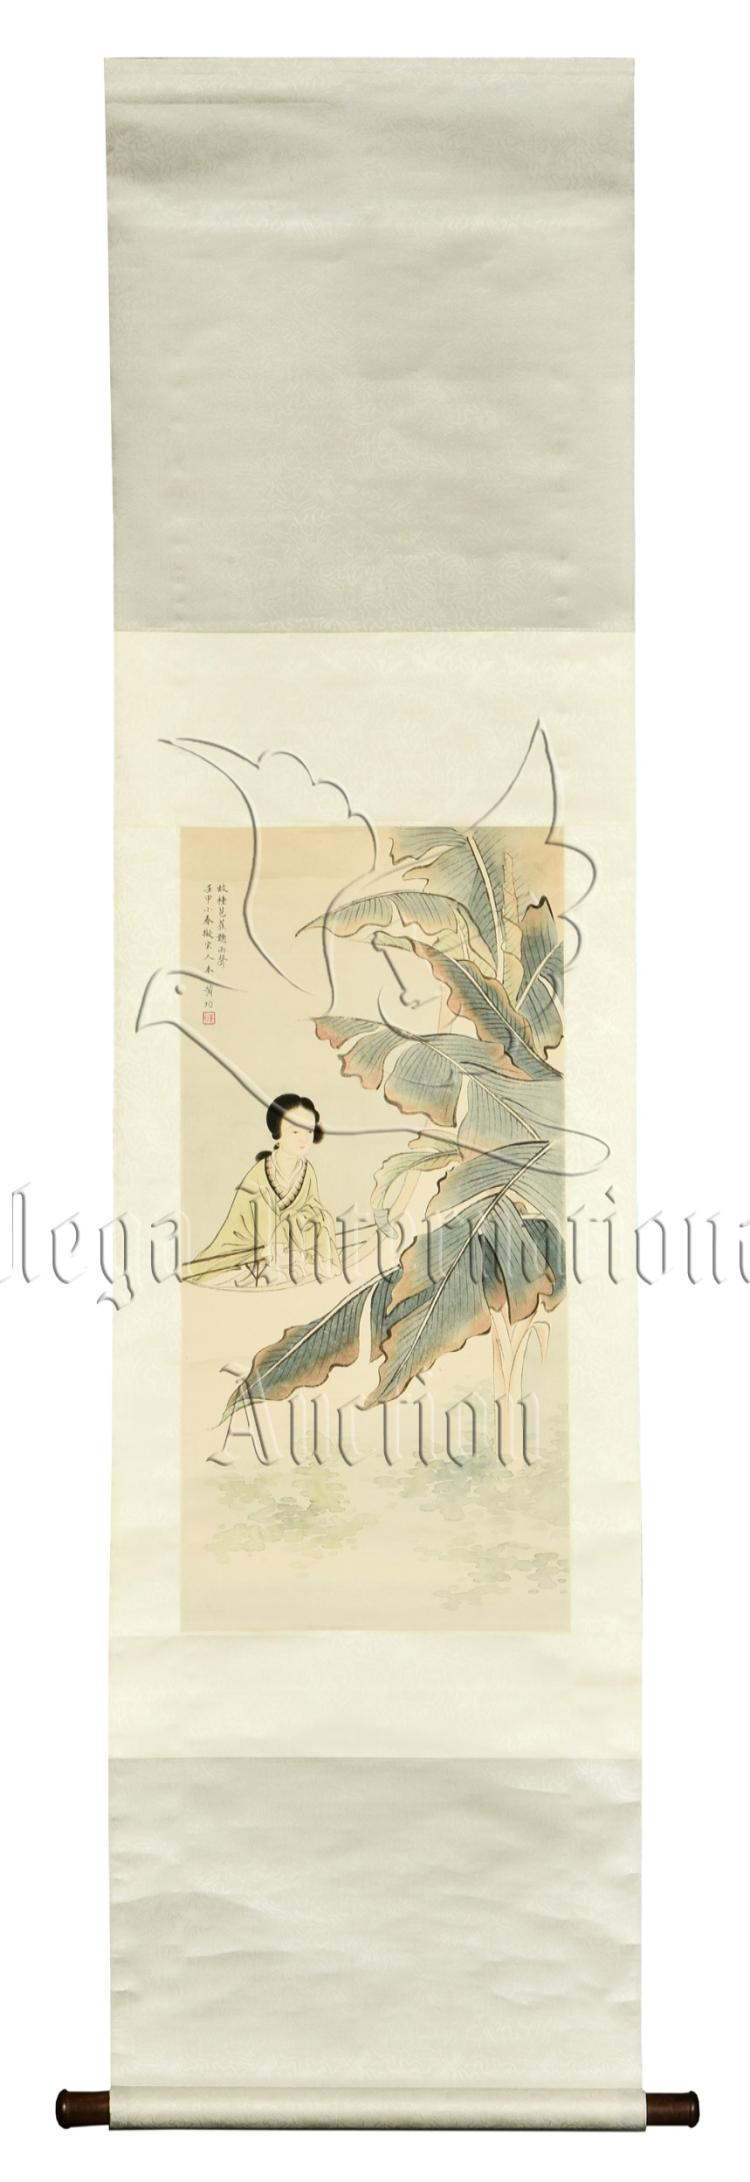 HUANG JUN: INK AND COLOR ON PAPER PAINTING 'LADY'